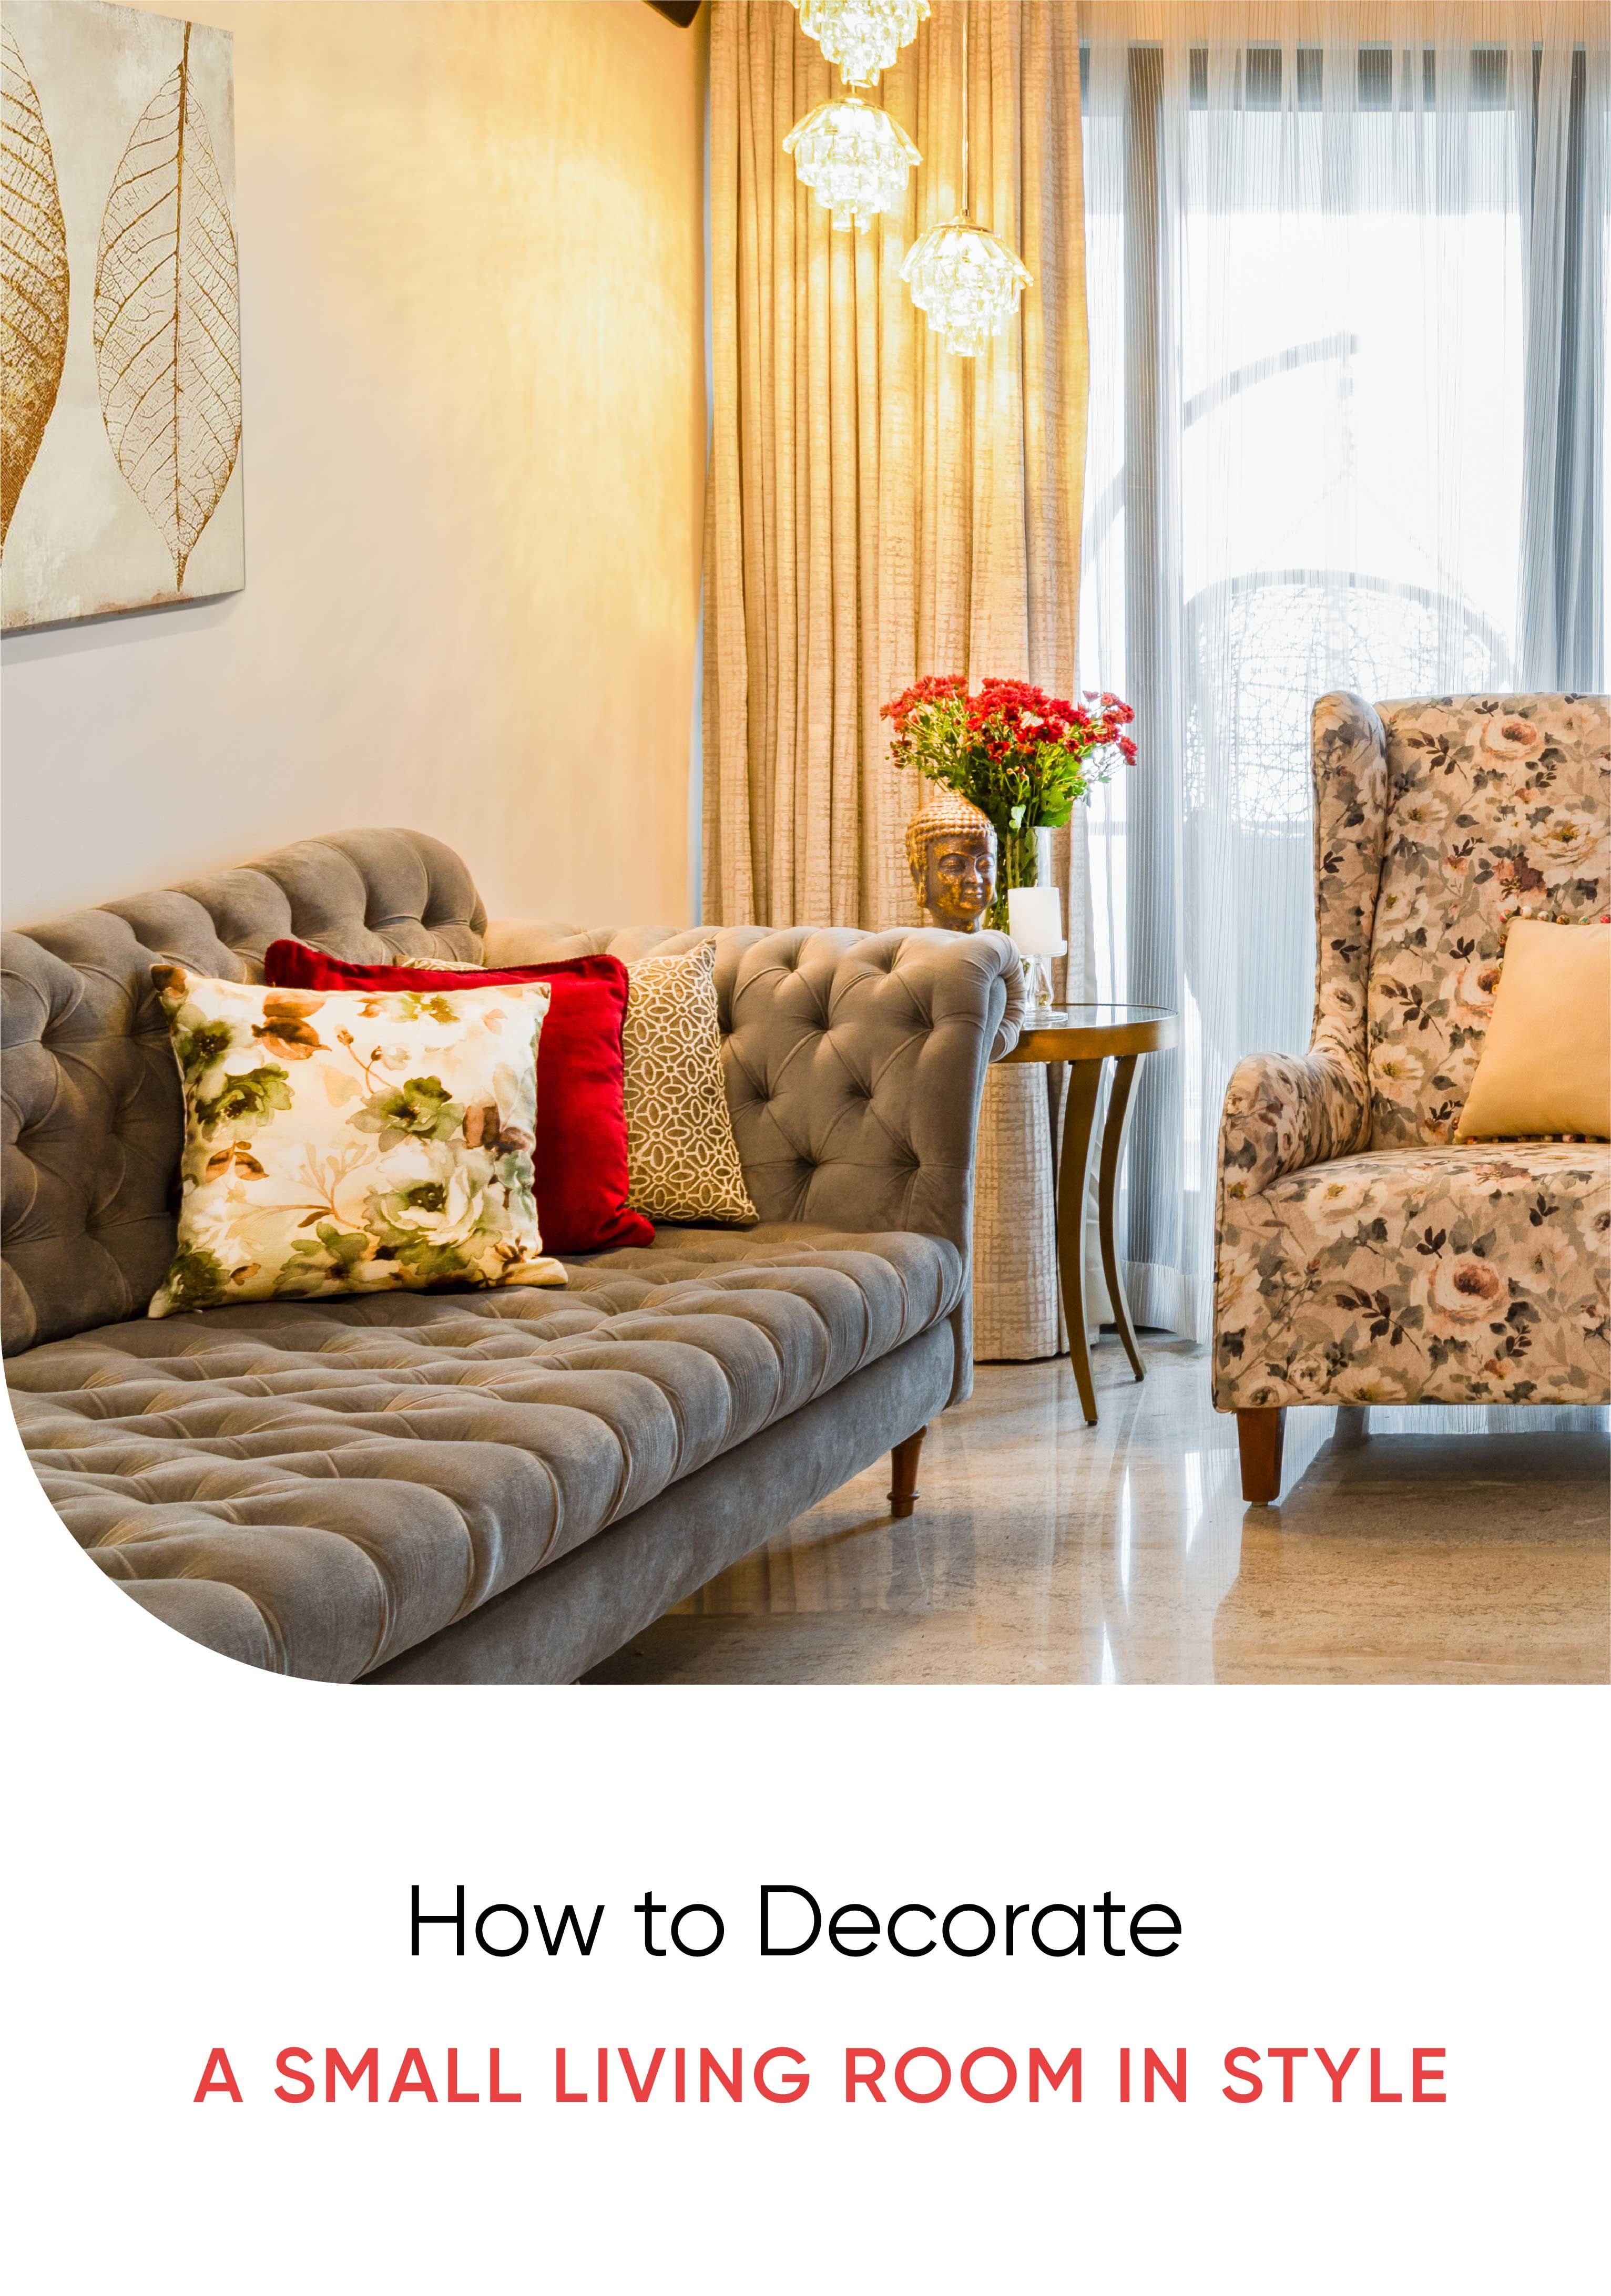 Compact Living Room Decor That Instantly Opens Up The Space In 2020 Small Living Room Living Room Decor Tips Small Living Room Decor